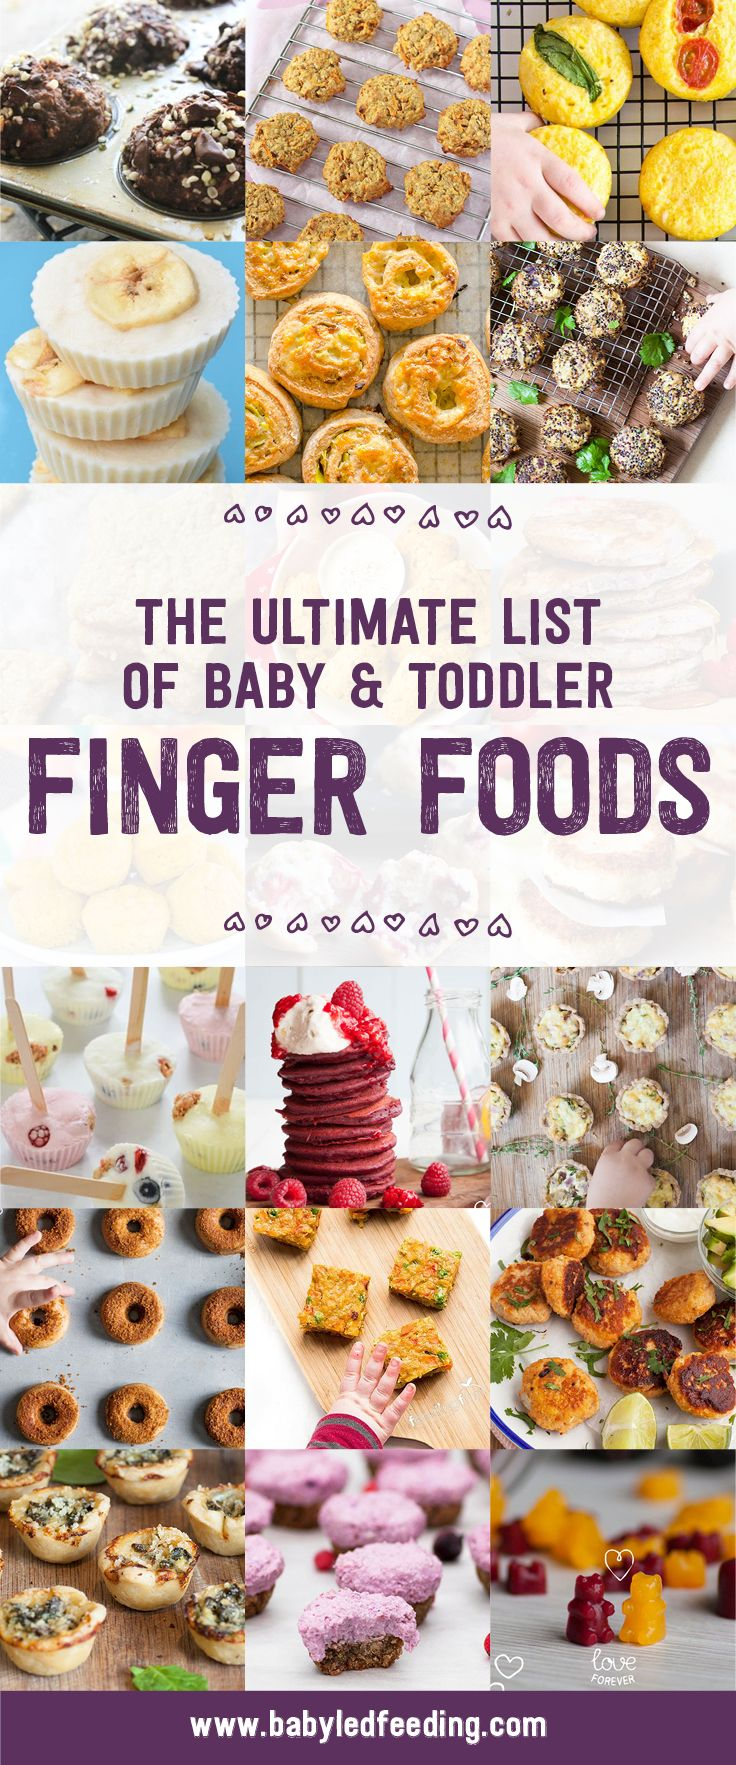 The Ultimate List of Baby and Toddler Finger Foods. Homemade Baby Finger Food Recipes and Ideas for giving Your Baby Nutritious Finger Foods. These delicious finger food recipes are easy to make and are soft for little hands. via @https://www.pinterest.com/babyledfeeding